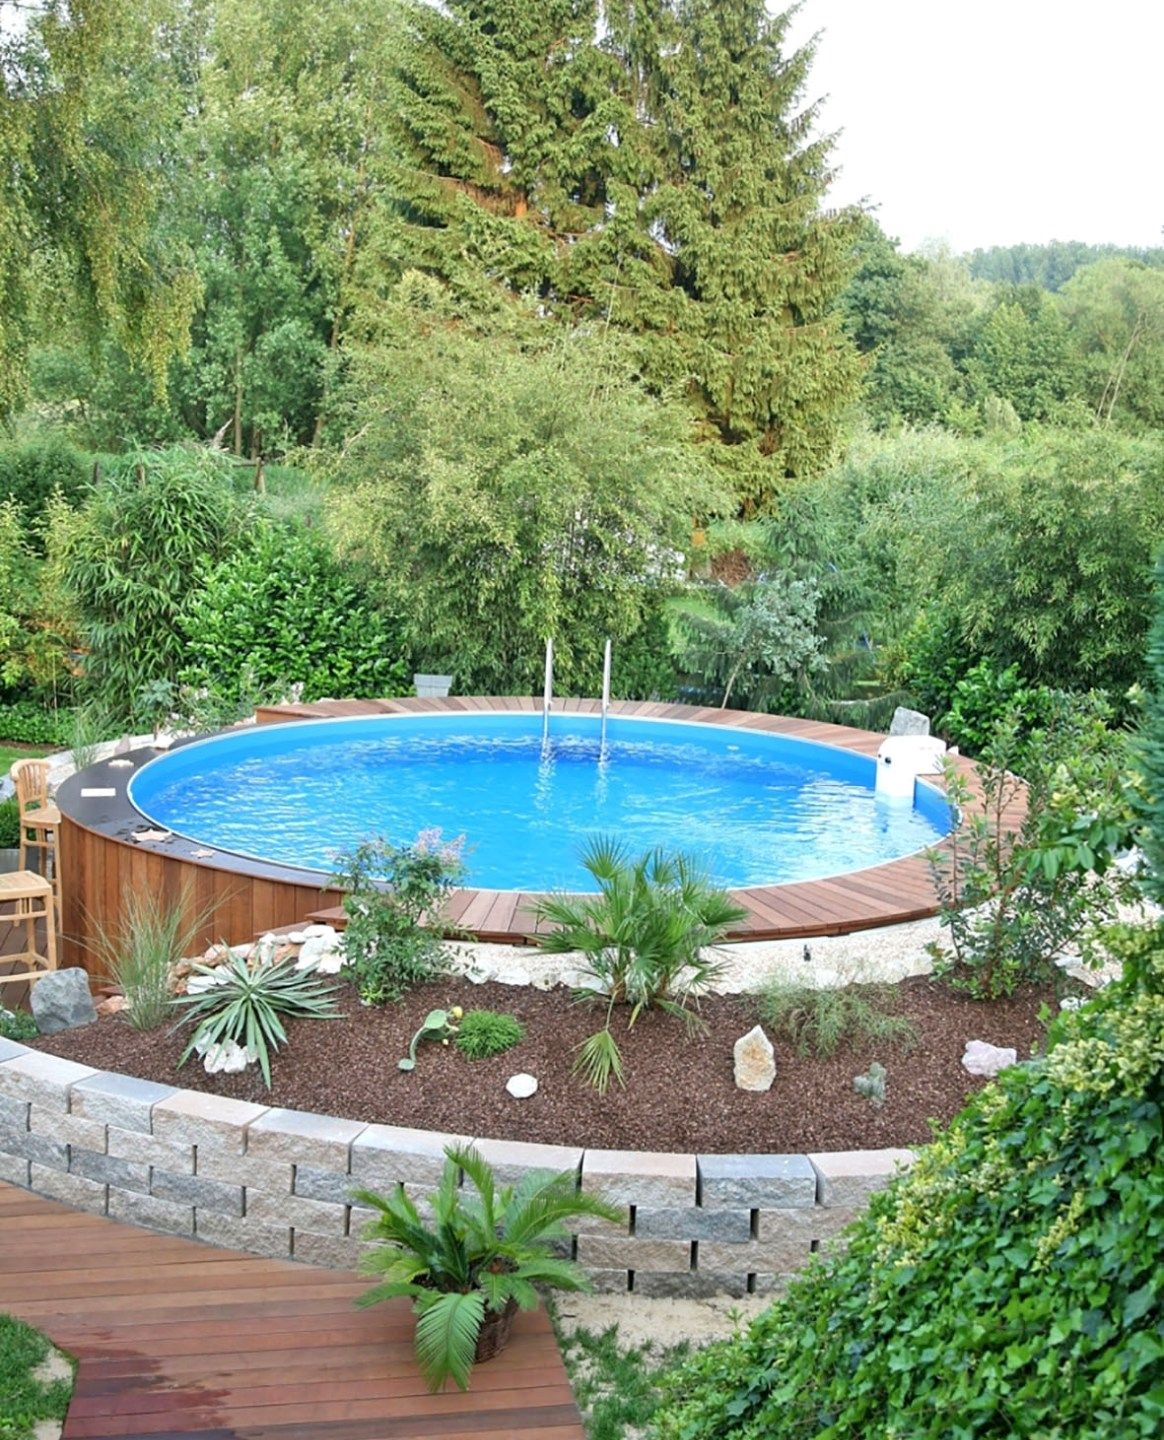 kleiner pool im gr nen garten pinterest terrasses piscines et d co jardin. Black Bedroom Furniture Sets. Home Design Ideas